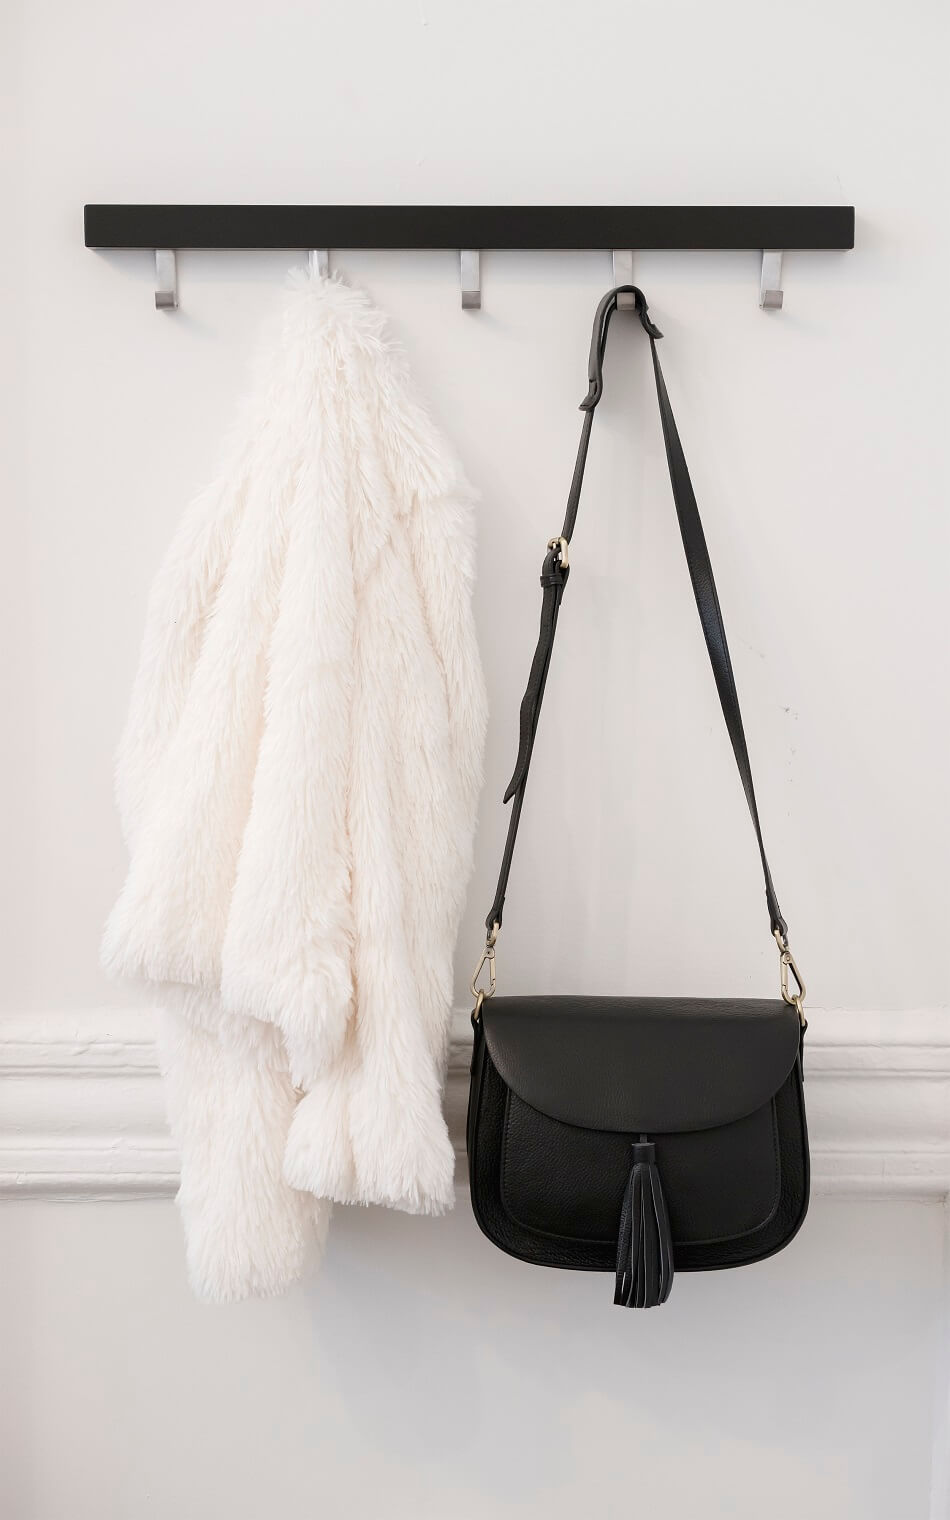 white jacket and black purse hanging against white wall